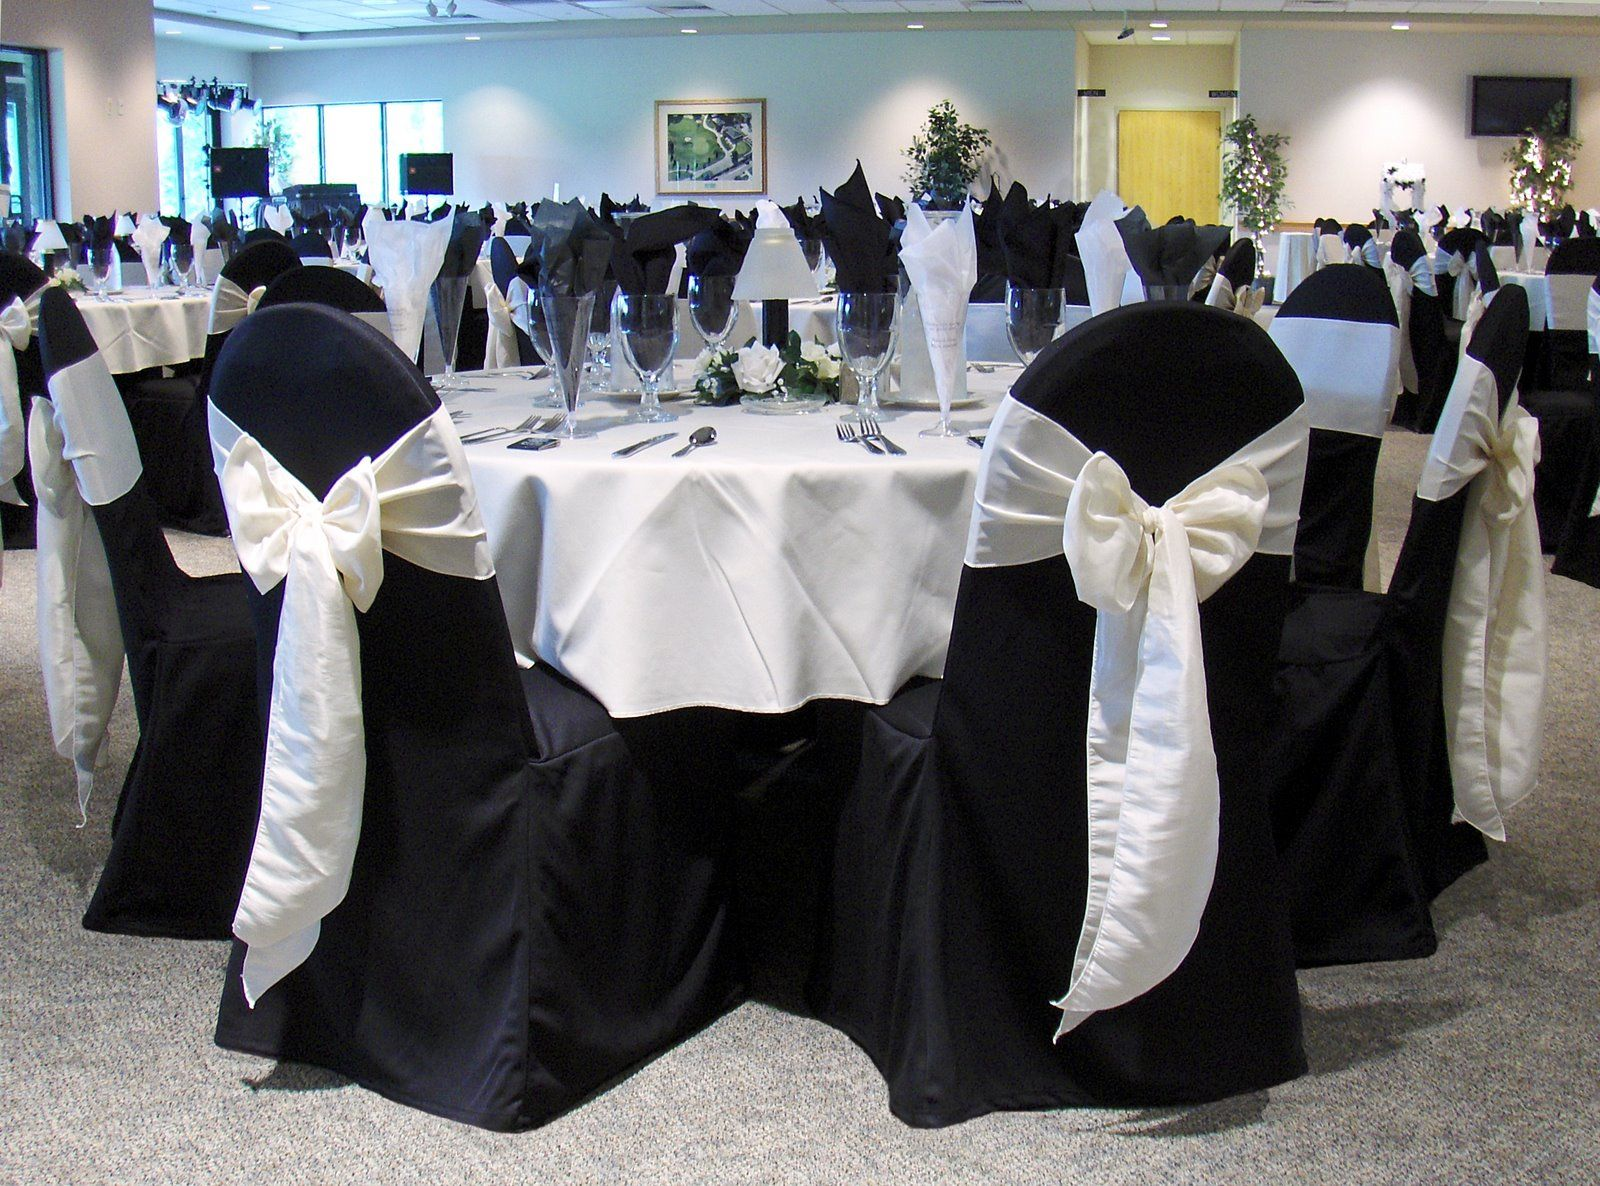 cheap black chair covers for sale ergonomic kneeling review rentals to enhance wedding decoration in 2019 complete your reception sittings with our chaircovers simplyelegantchaircovers offers cheapwedding